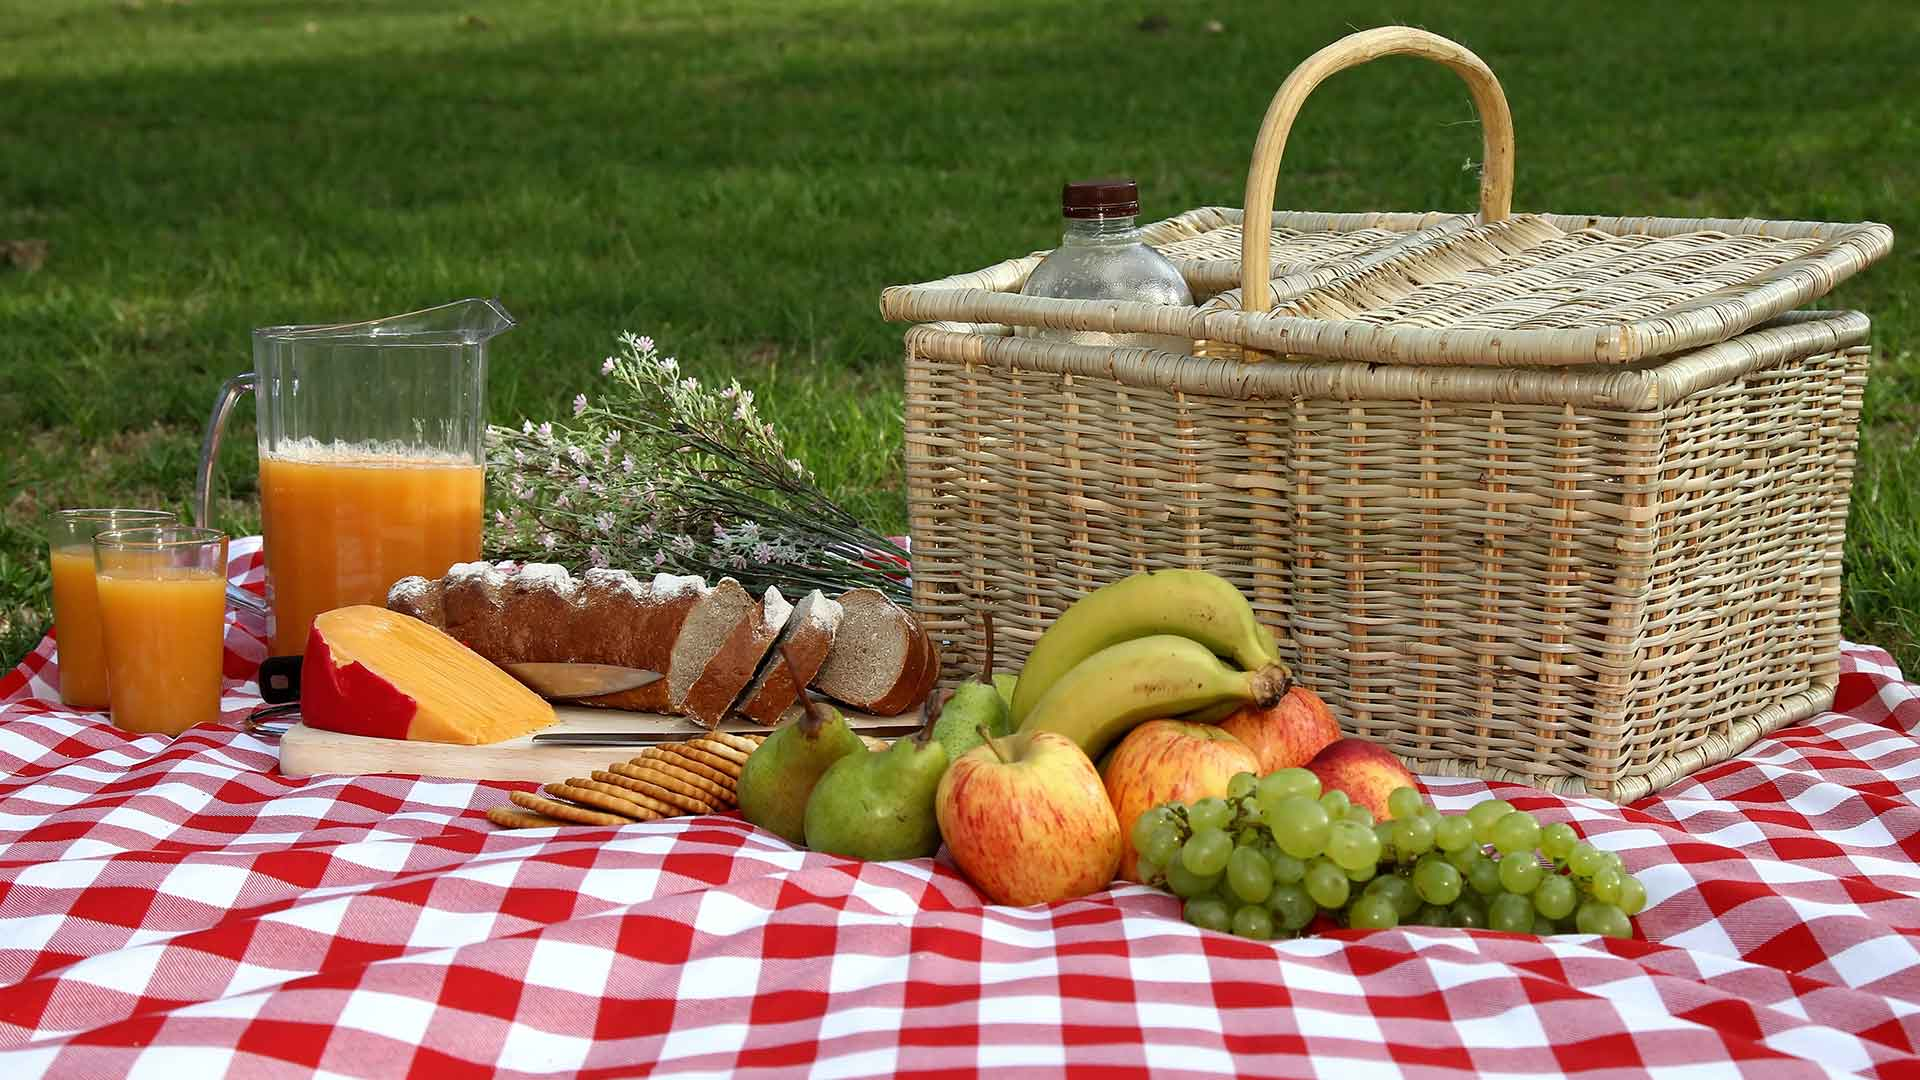 Picnic basket, tablecloth and food spread out in a backyard